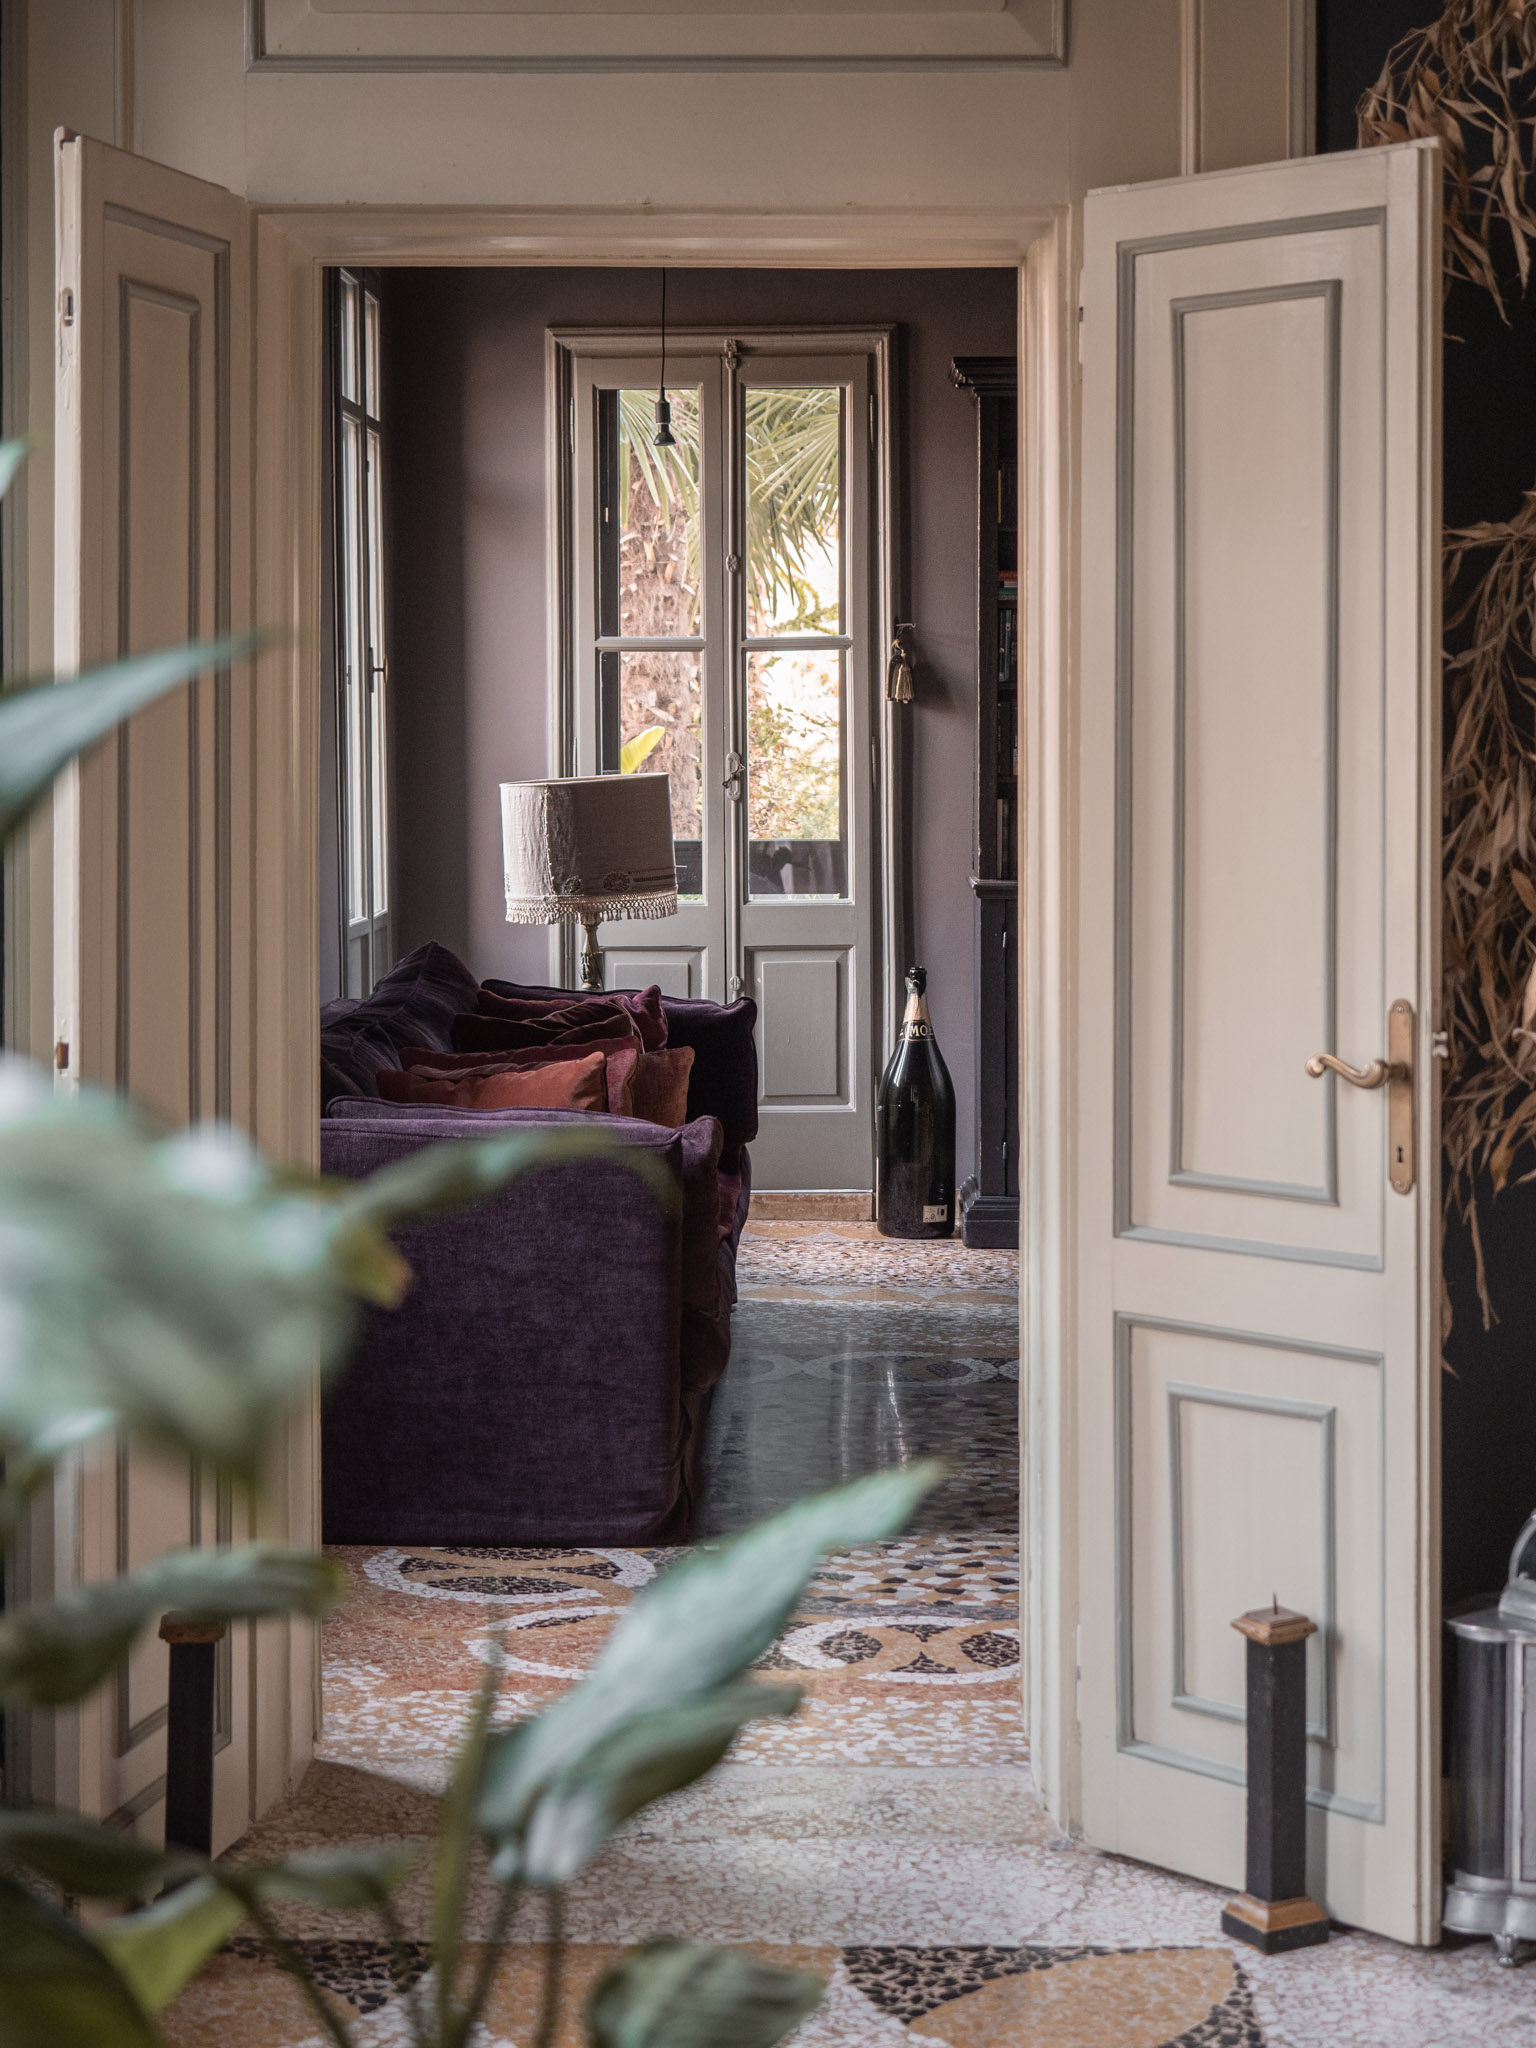 Le Convertite Bed and Breakfast, Treviso